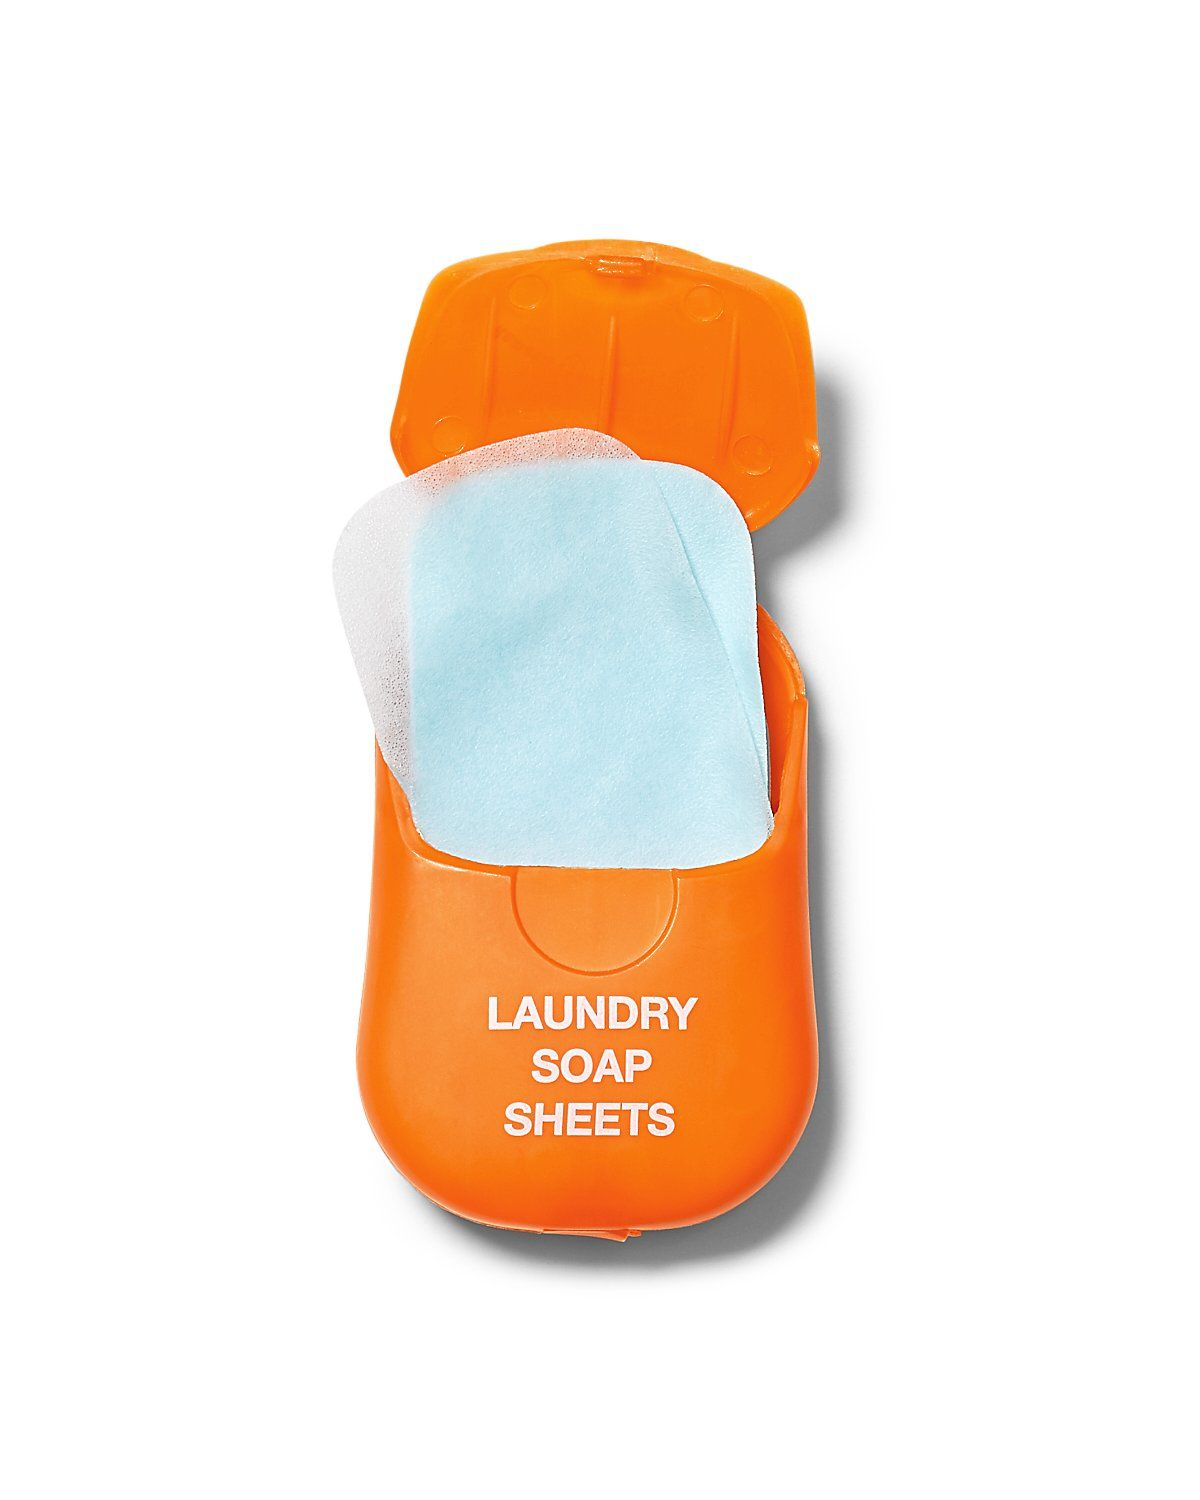 Travelon Laundry Soap Sheets Eddie Bauer Laundry Soap Soap